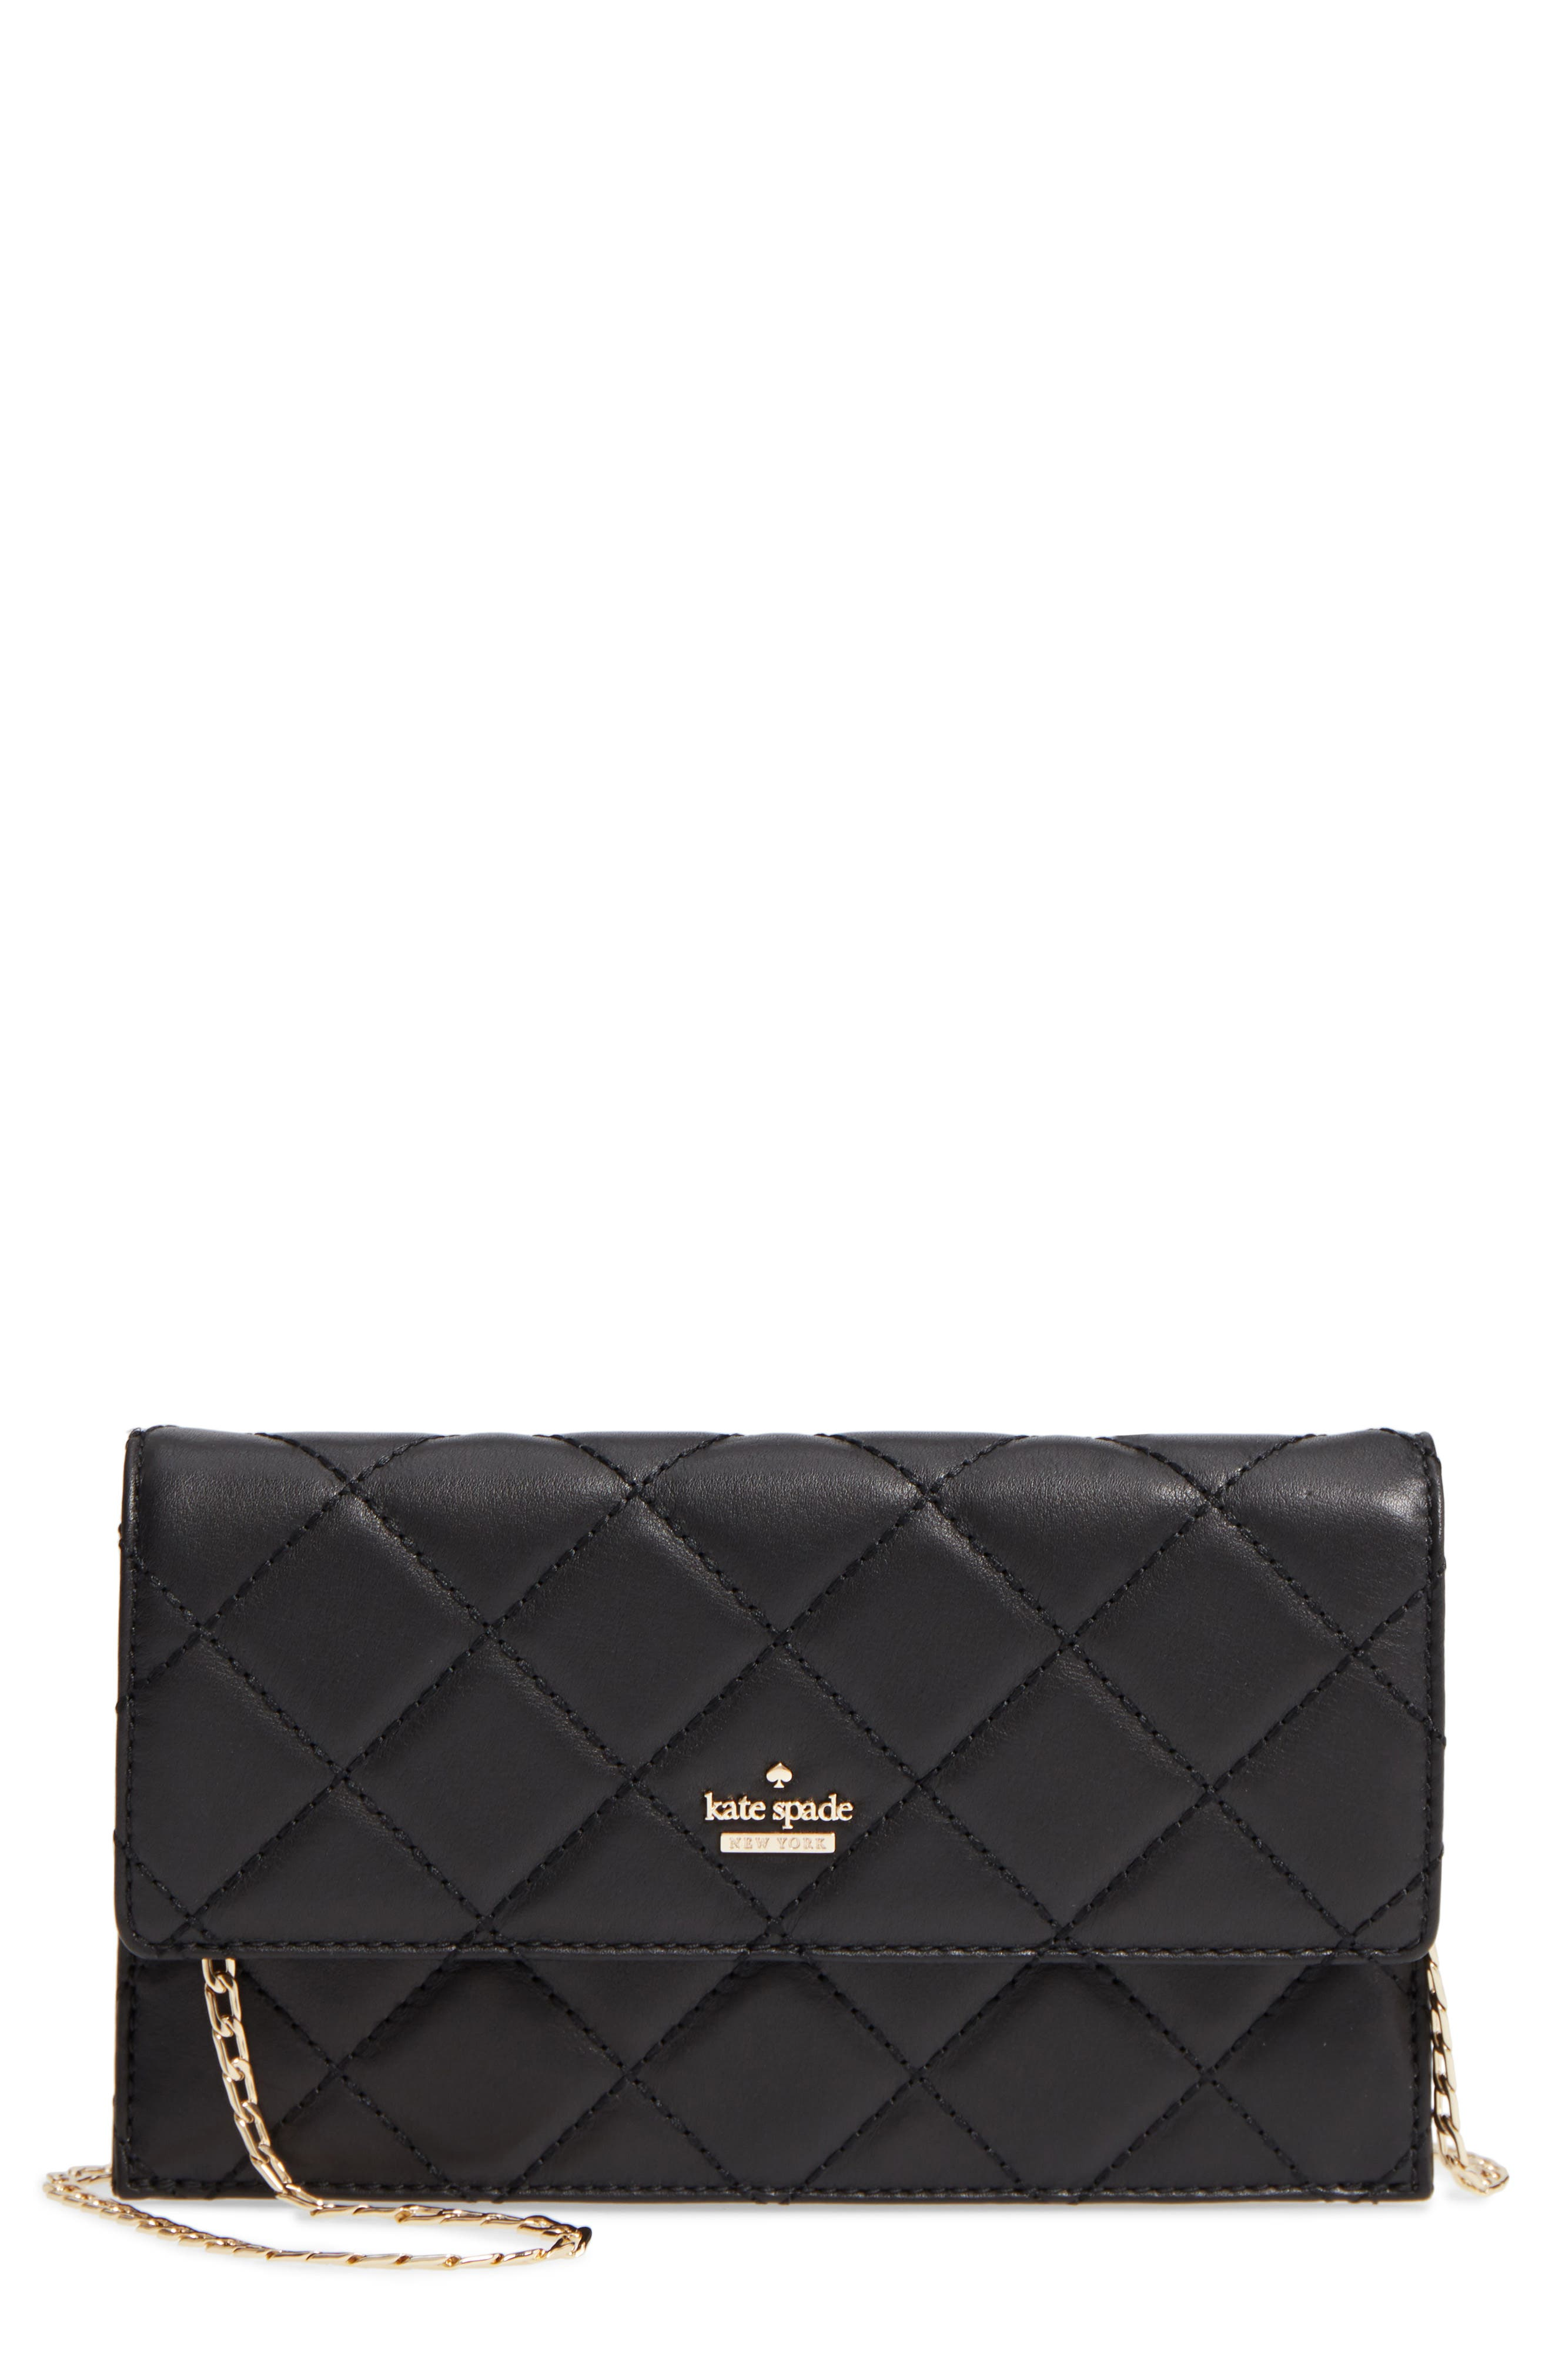 emerson place - brennan quilted leather convertible clutch & card holder,                             Main thumbnail 1, color,